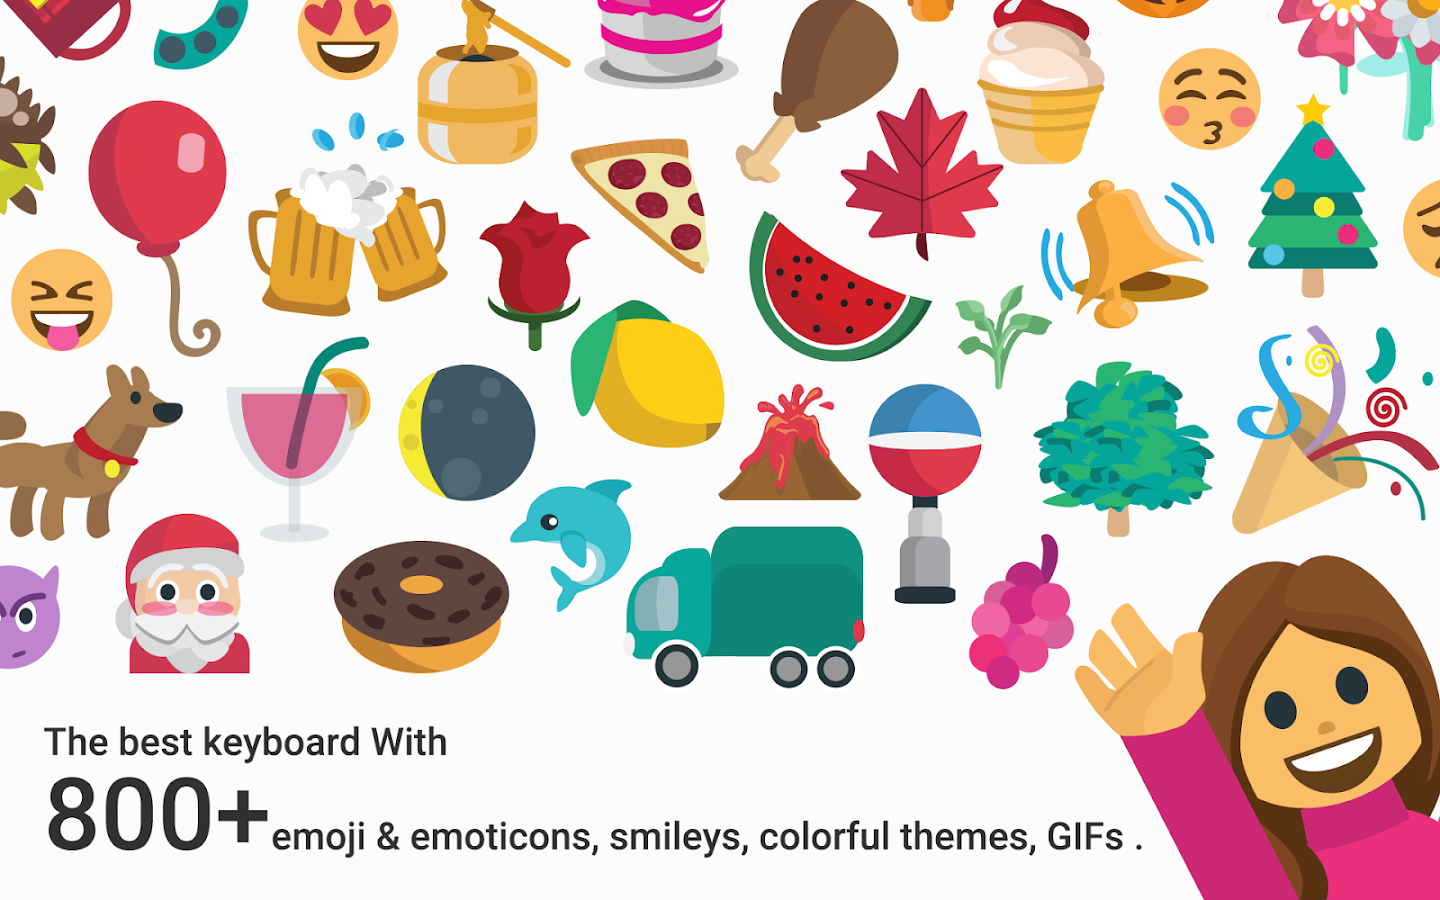 Lotus Notes Emoticons Cute Owls Emoji Keyboard Theme Android Apps On Google Play